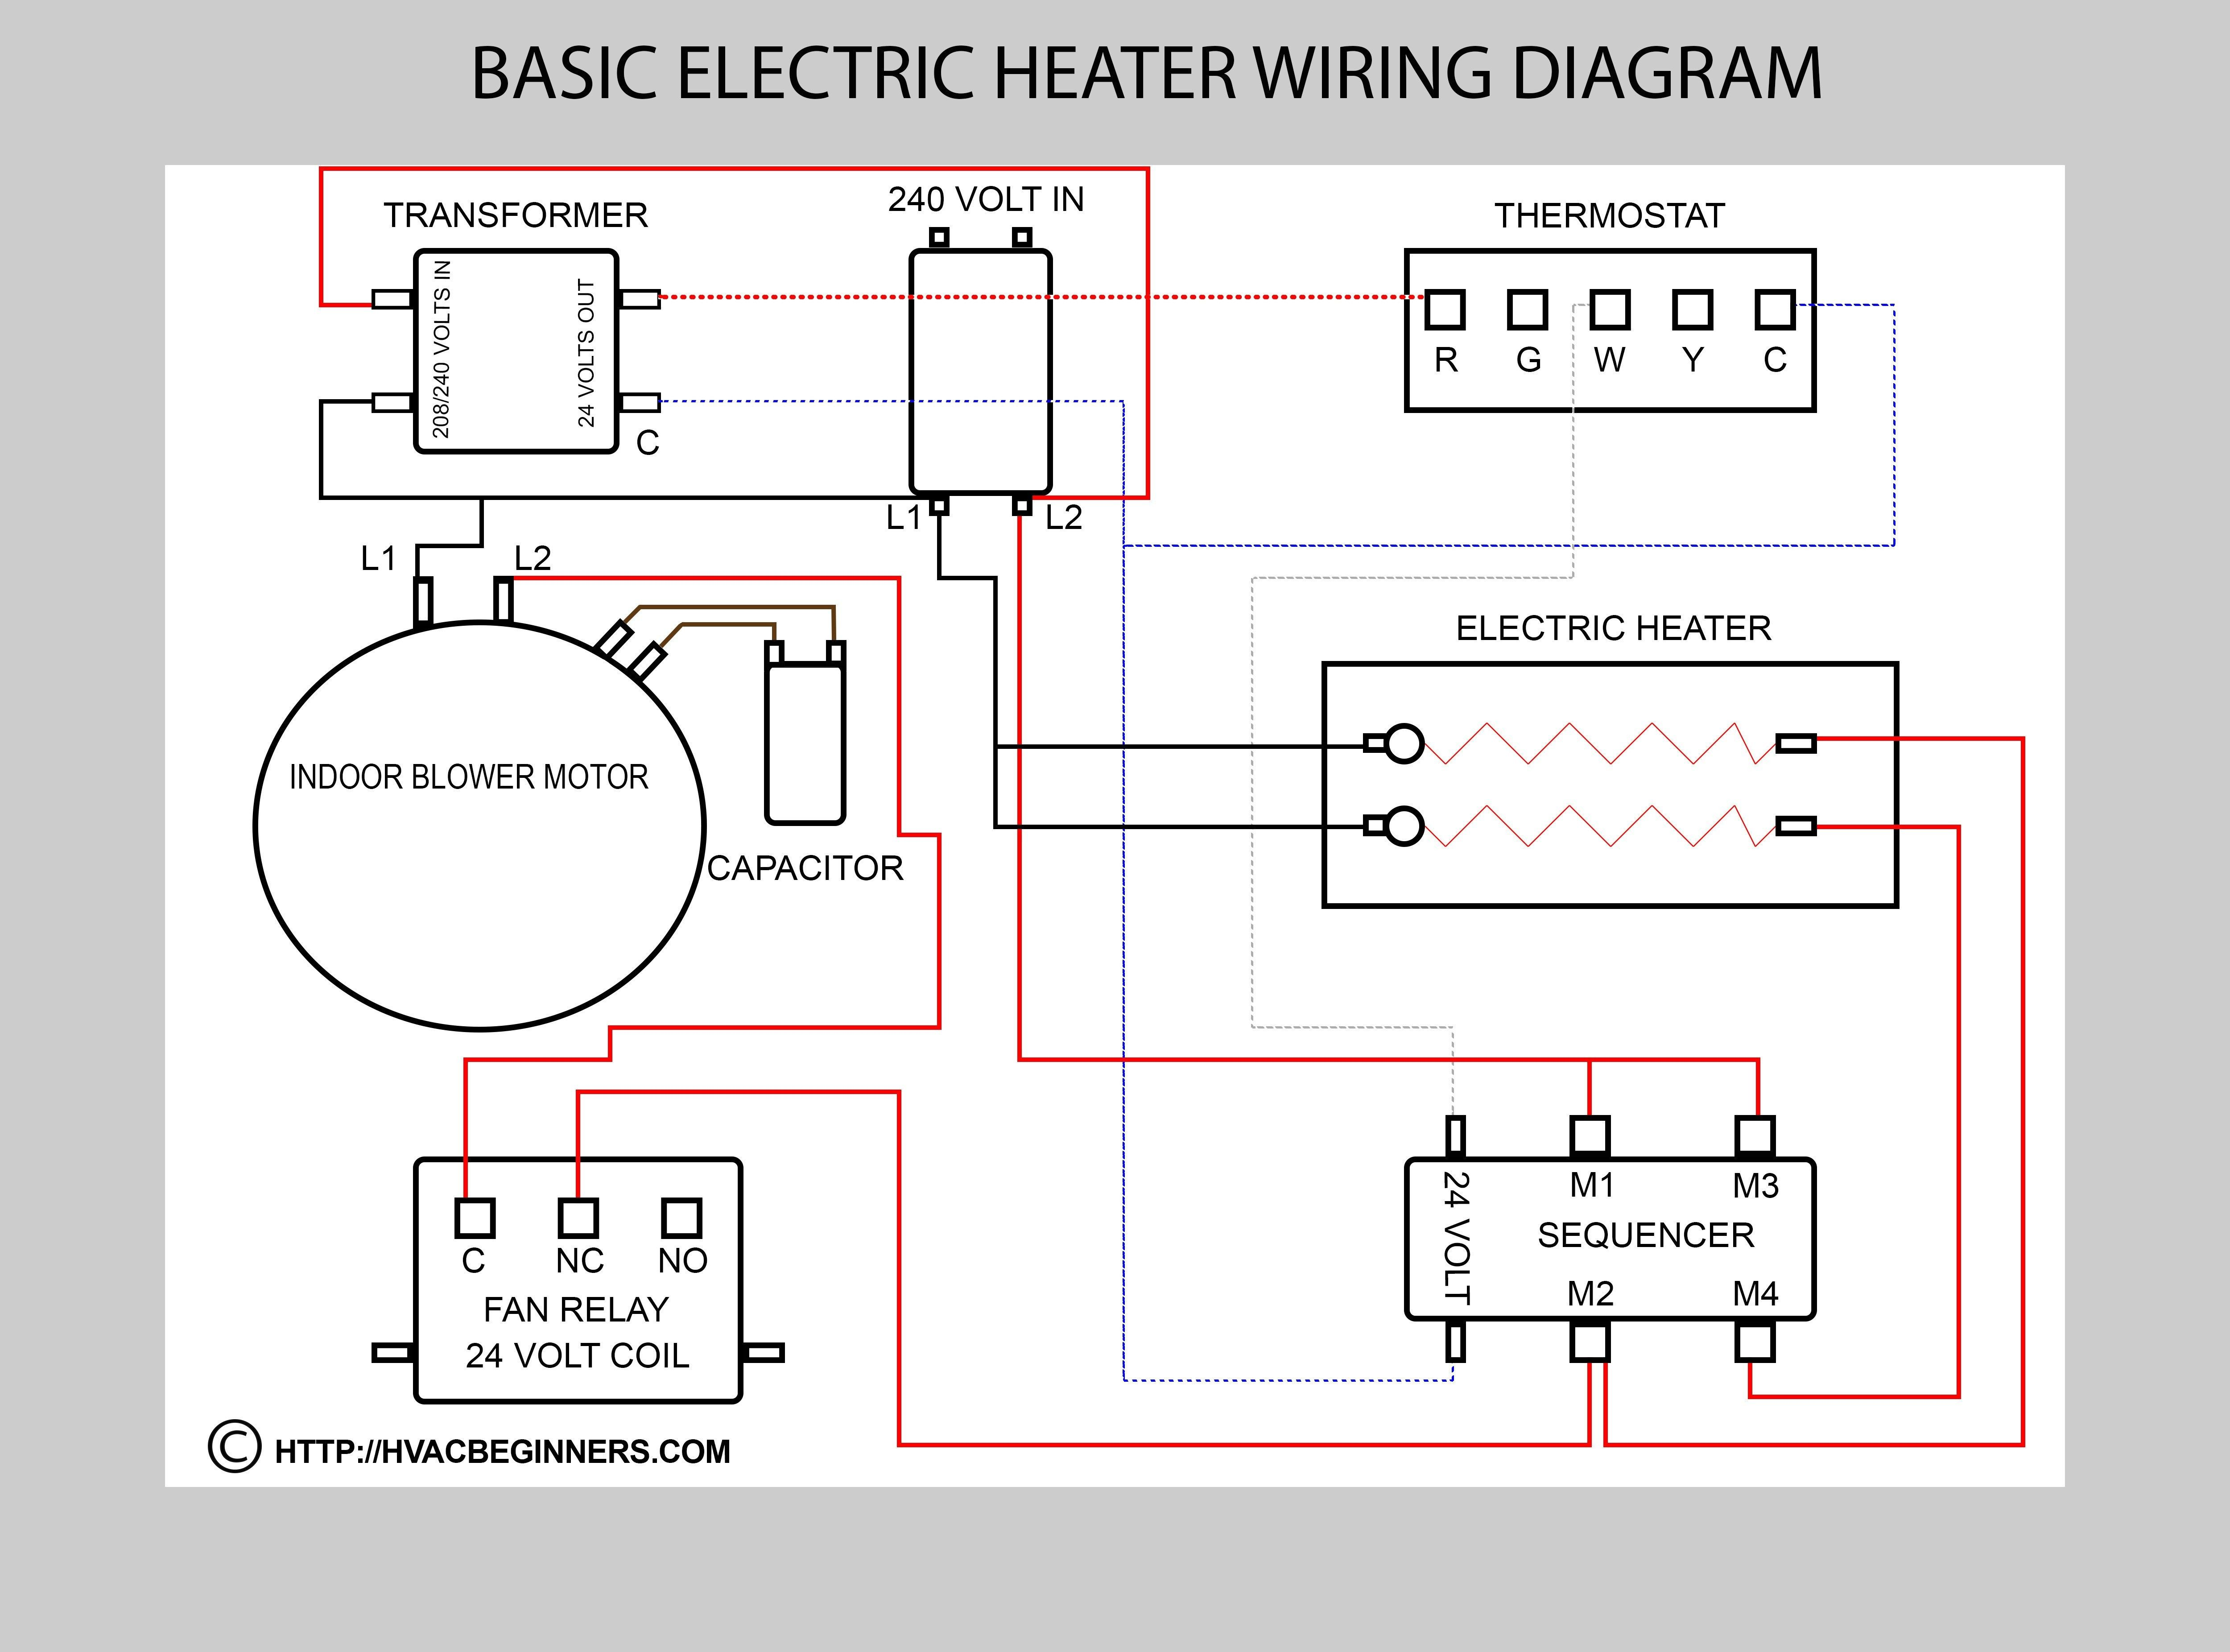 Nest 3rd Generation Wiring Diagram Awesome In 2020 Electrical Circuit Diagram Basic Electrical Wiring Circuit Diagram